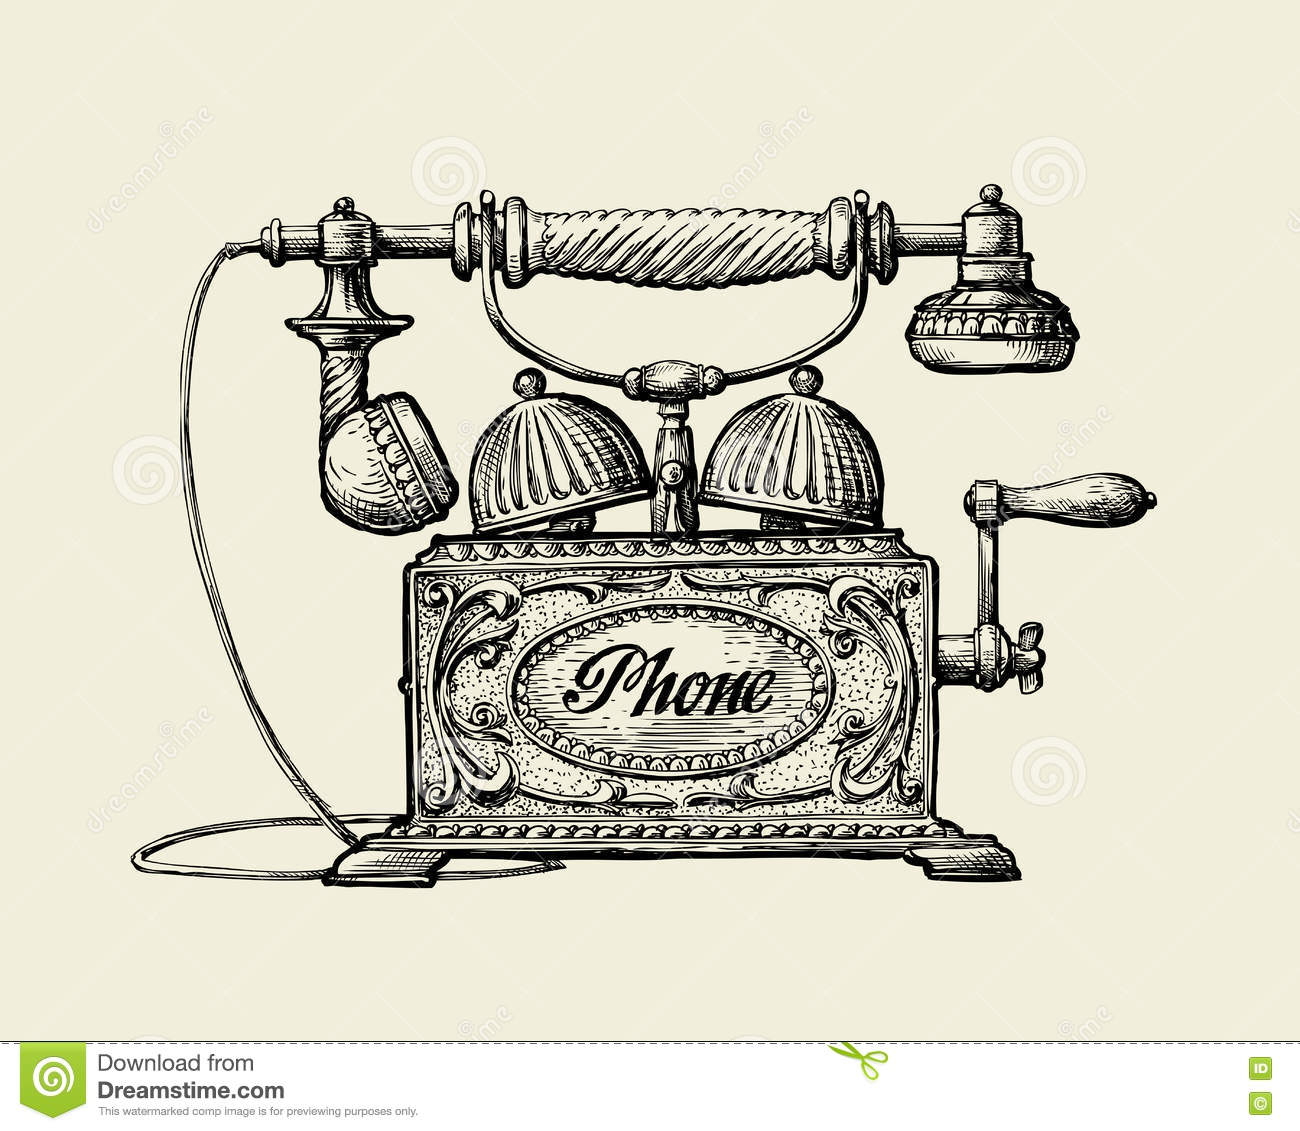 Classic Retro Illustration: Vintage Telephone. Hand-drawn Sketch Retro Phone. Vector